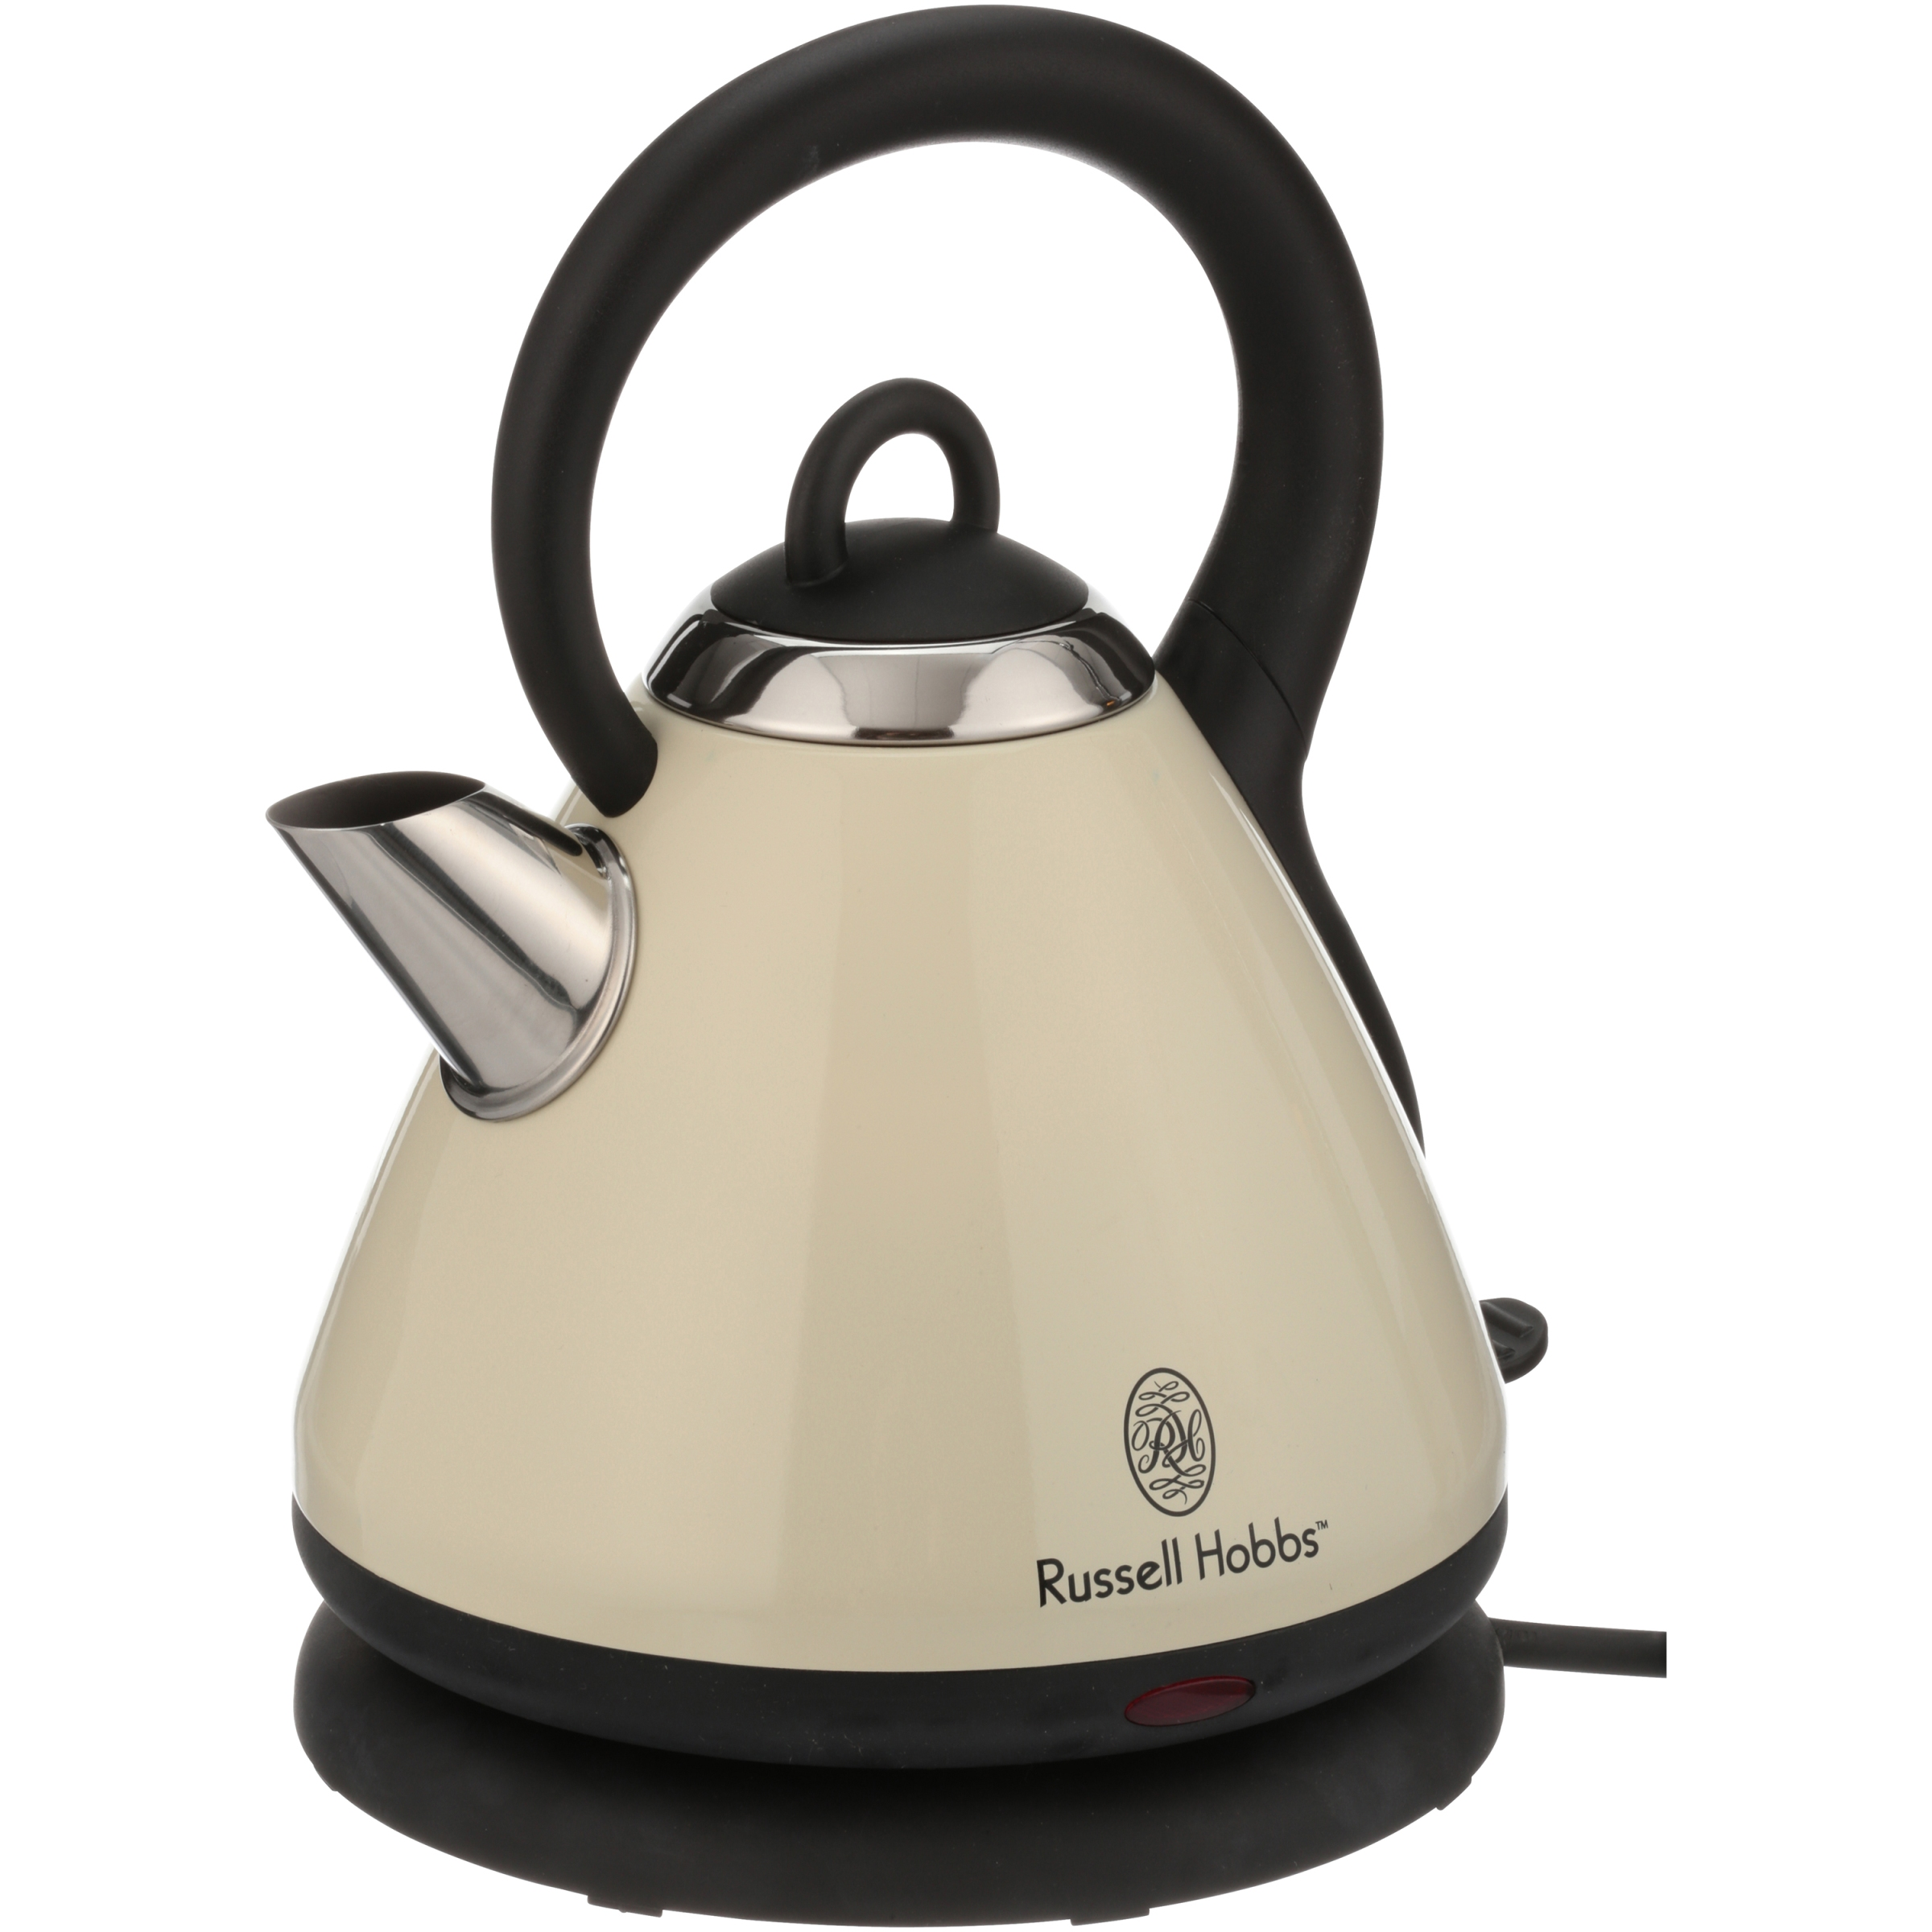 Russell Hobbs 1.8L Stainless Steel Electric Cordless Kettle, KE9000CR